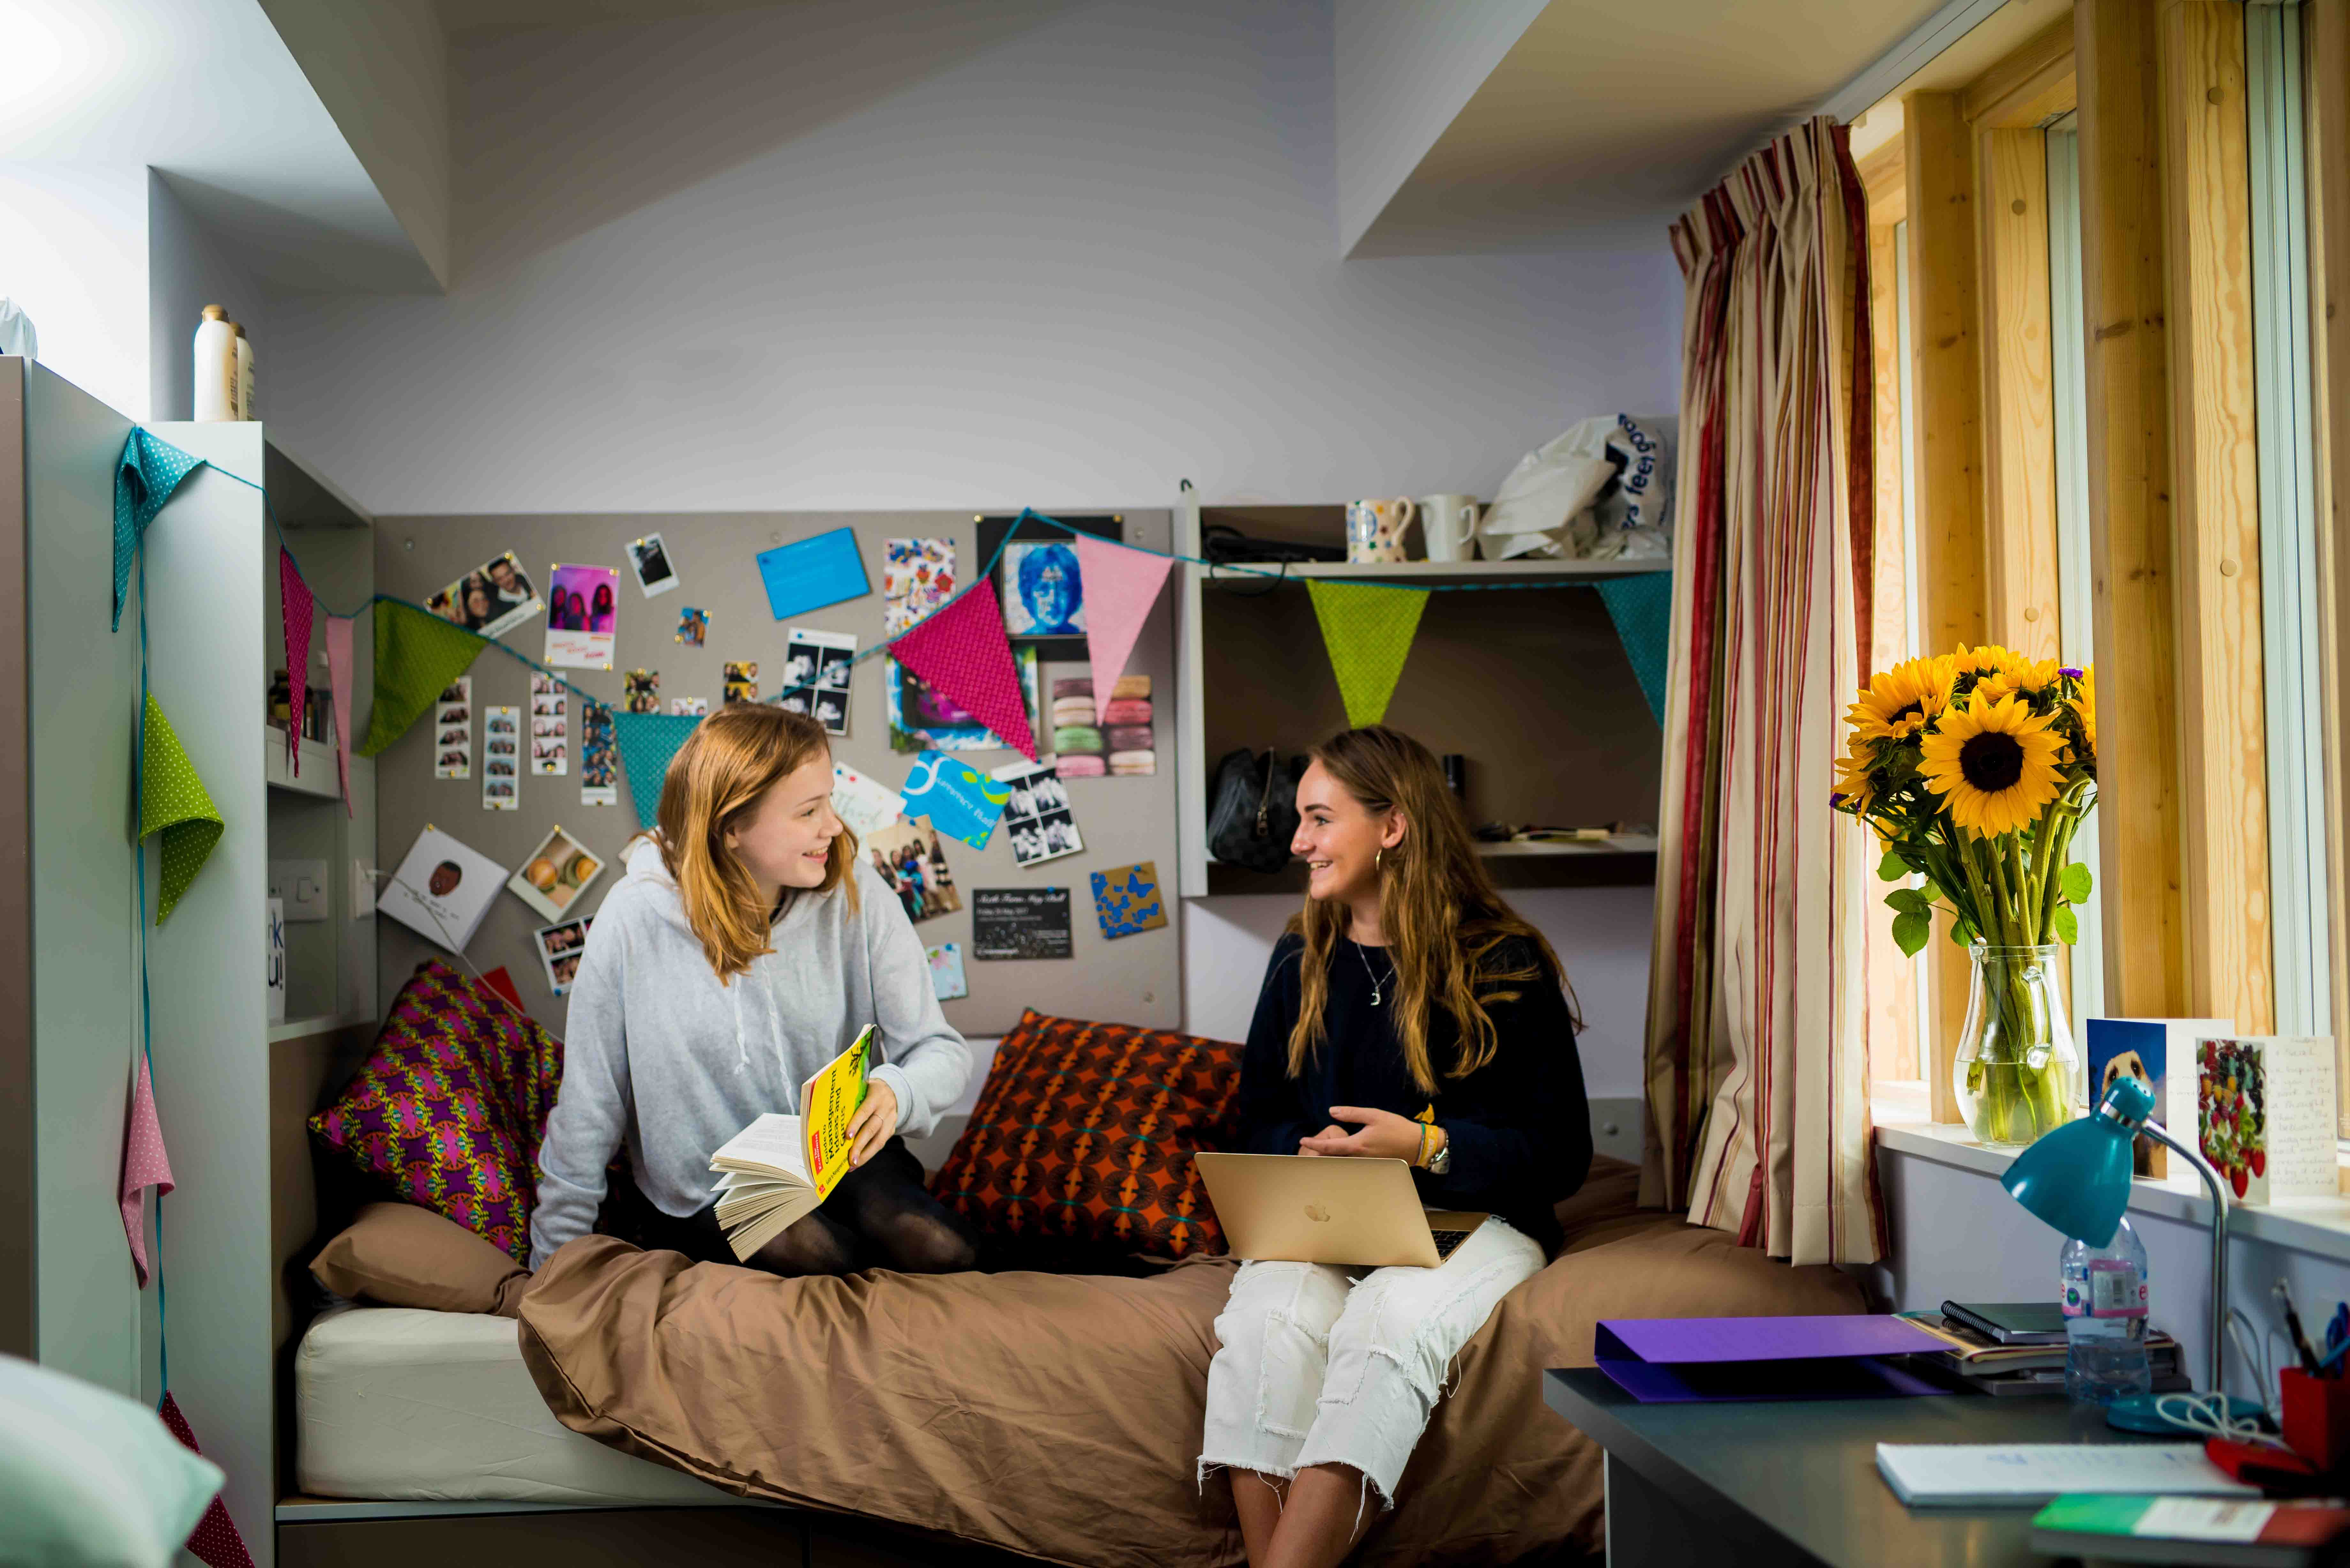 d'Overbroeck's, Oxford, Oxfordshire, England | Boarding | Dickinson | British Boarding School Consulting